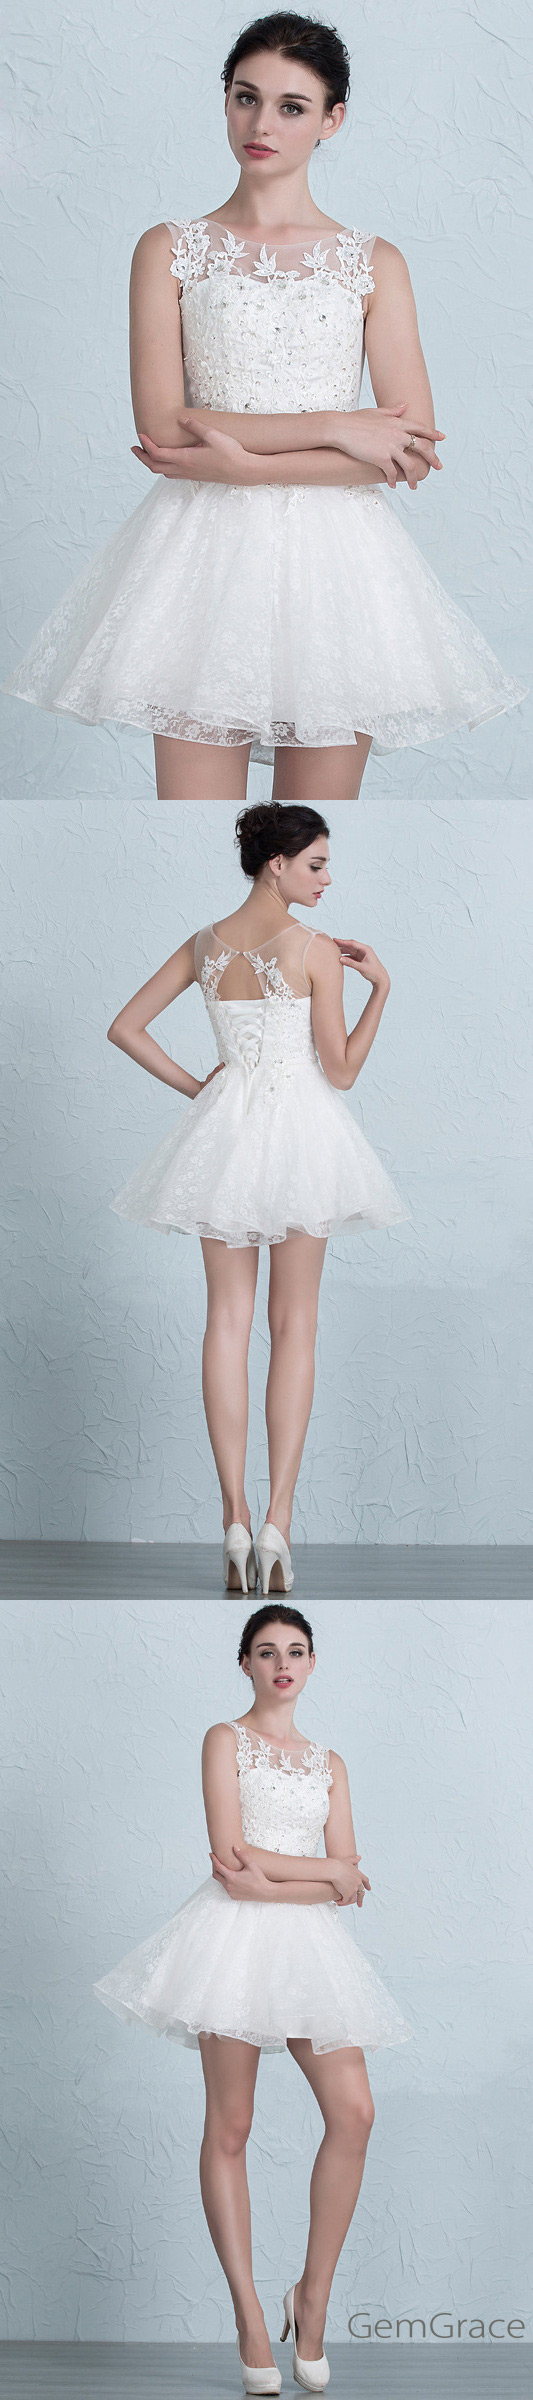 Fine Short White Wedding Reception Dress Adornment - All Wedding ...